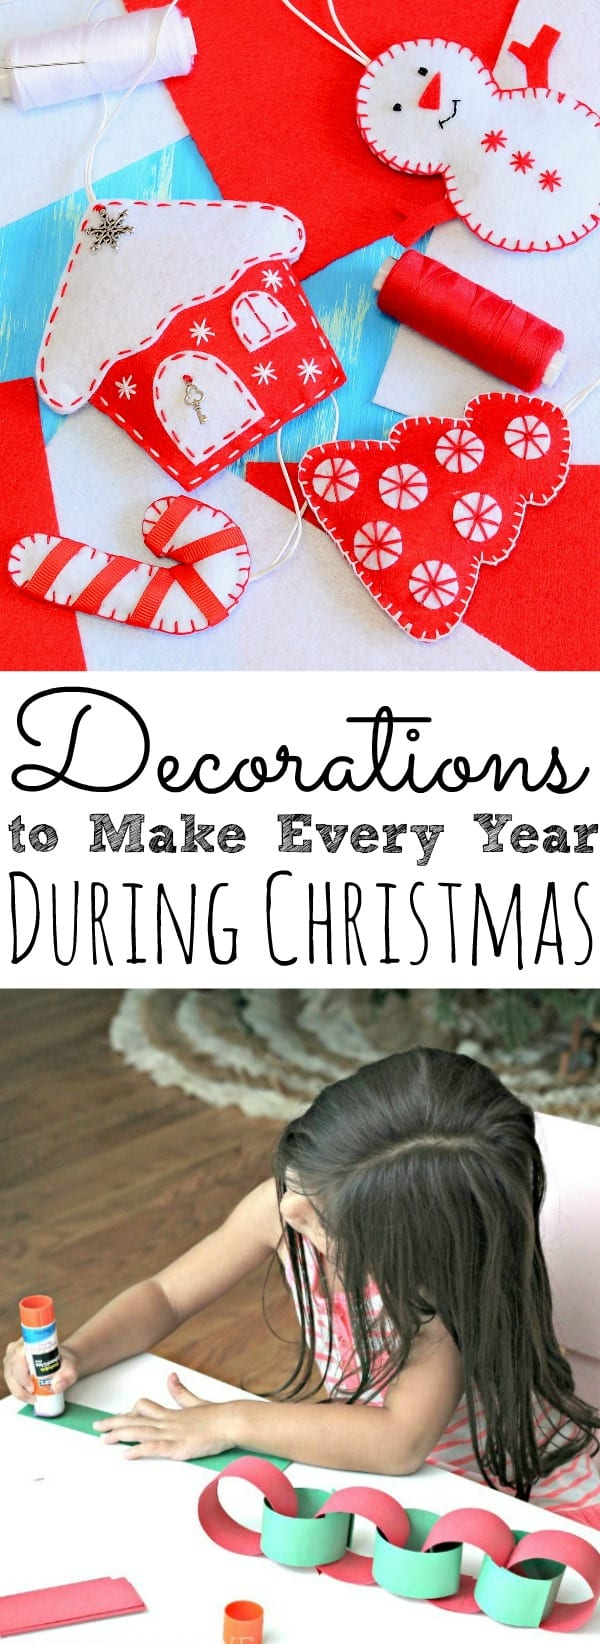 Decorations To Make Every Year During Christmas